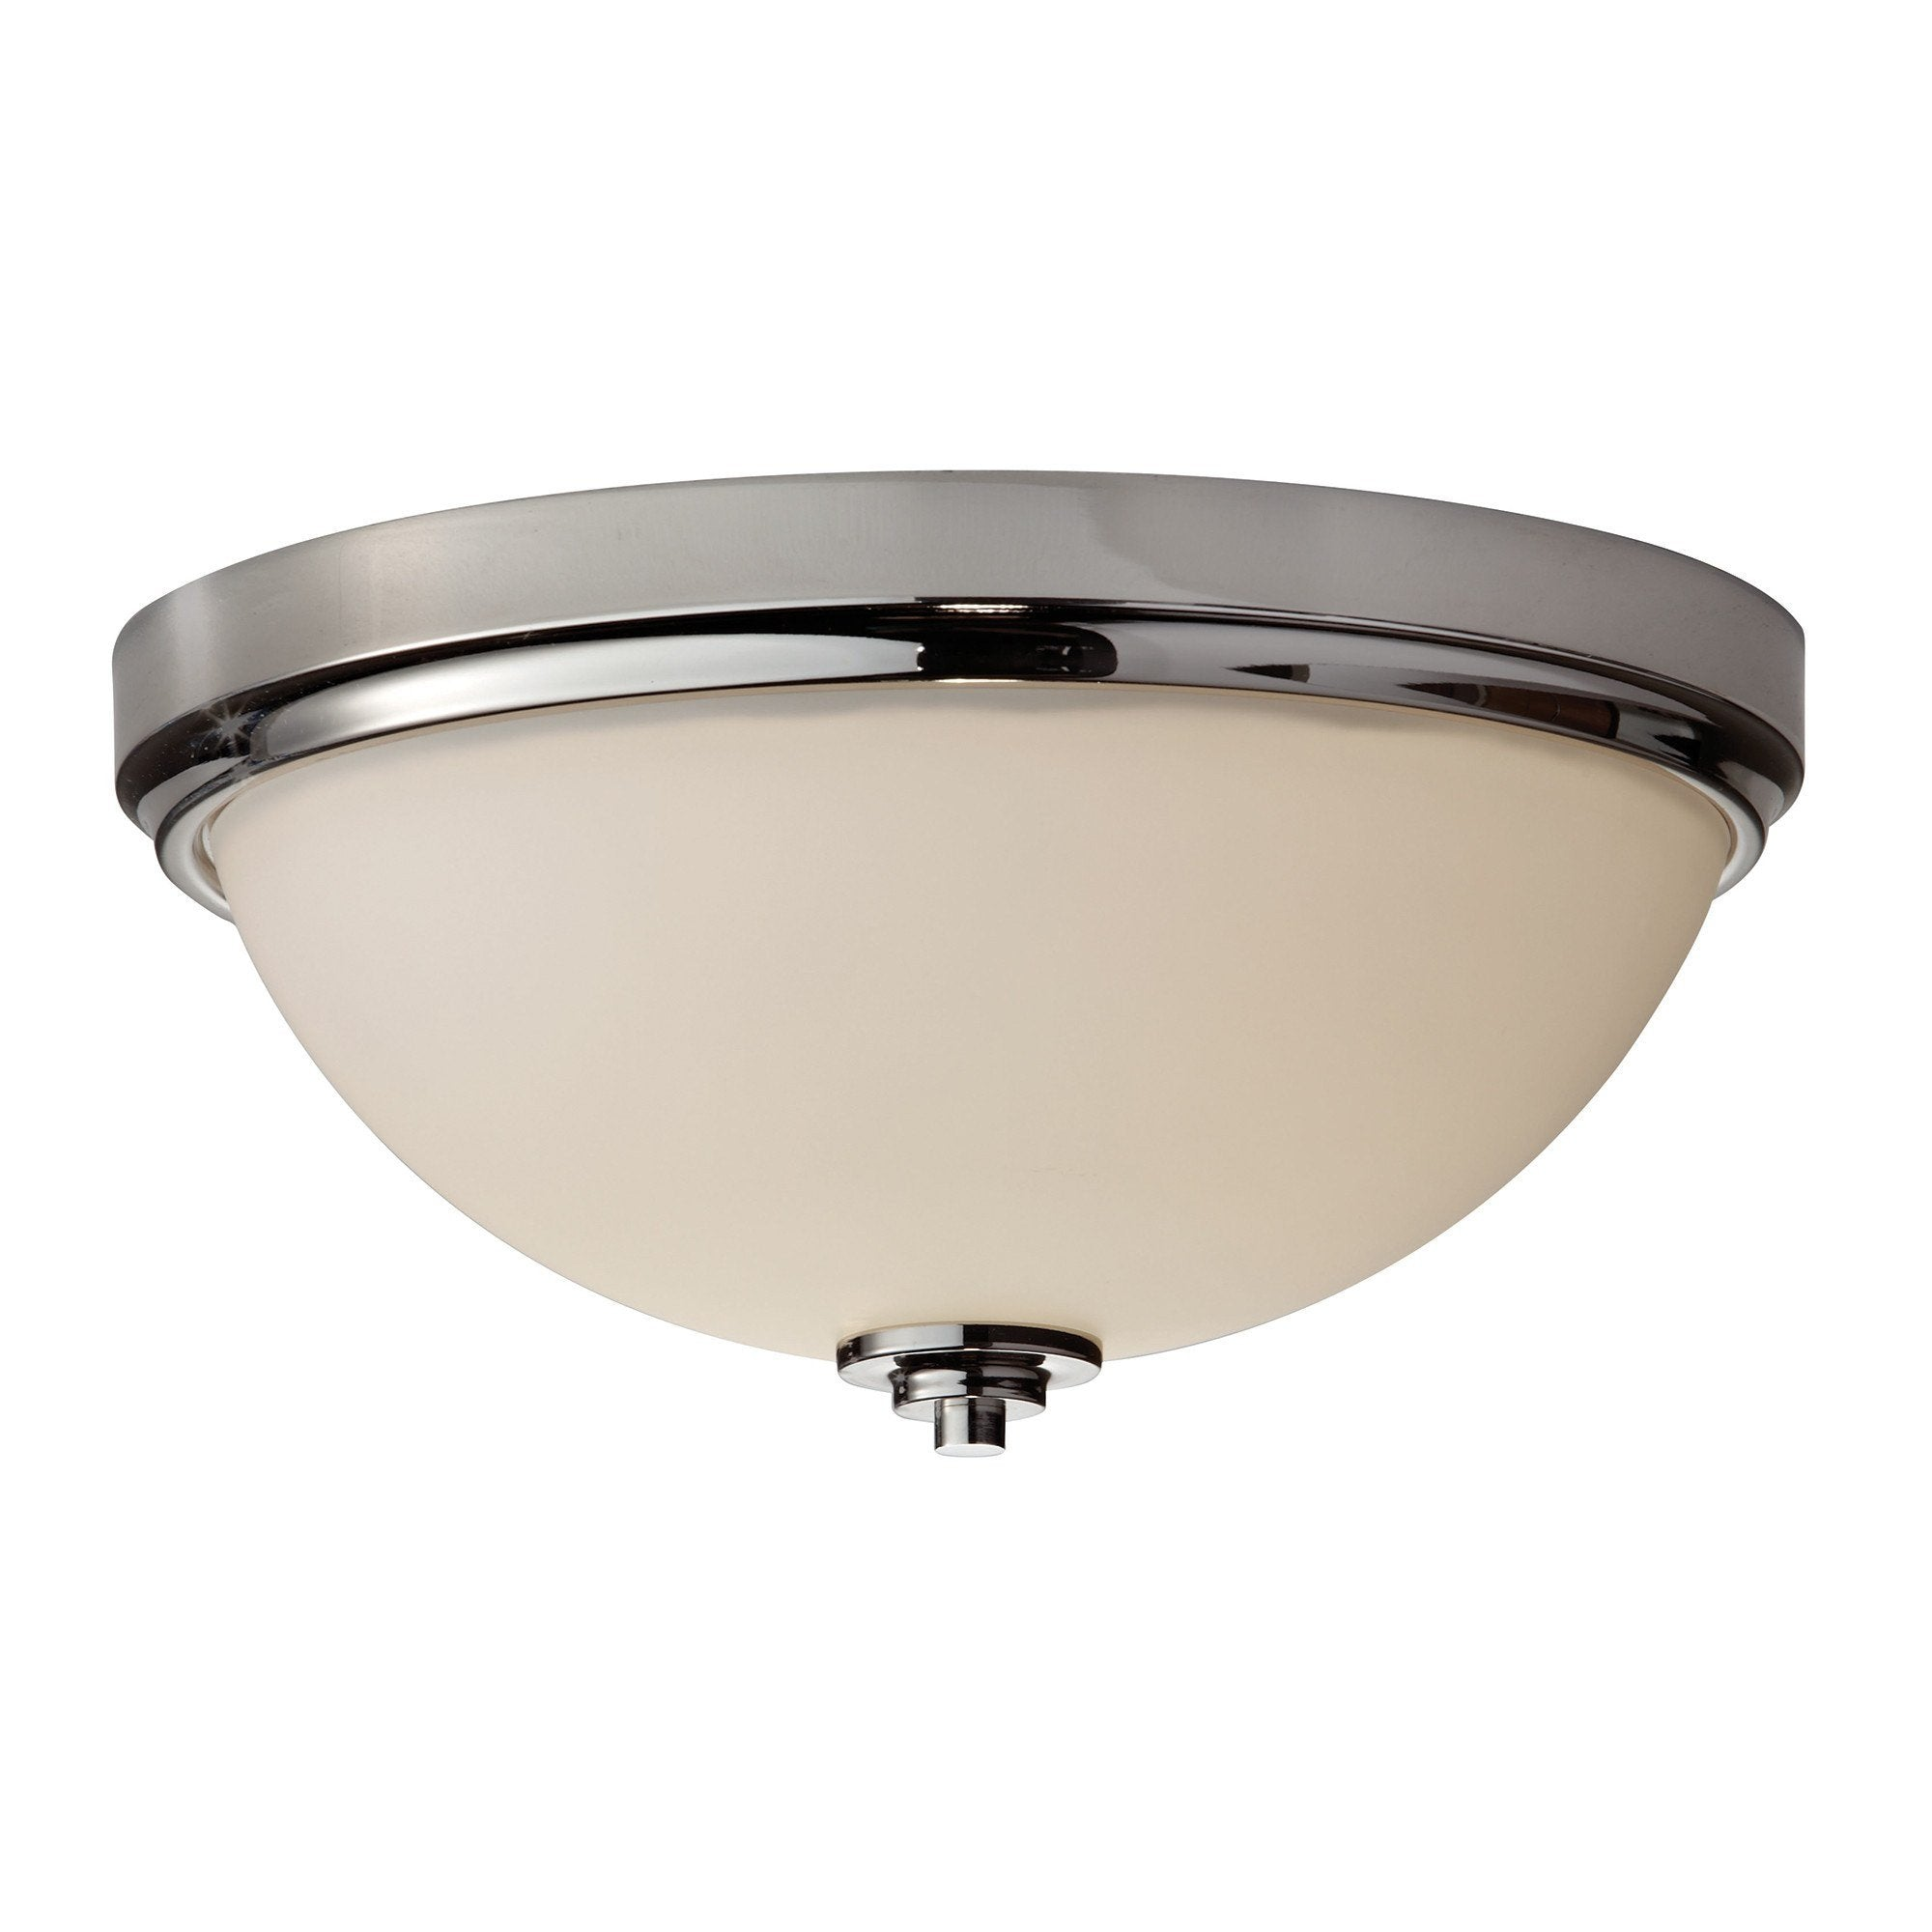 Feiss Malibu Flush Ceiling Light - London Lighting - 1